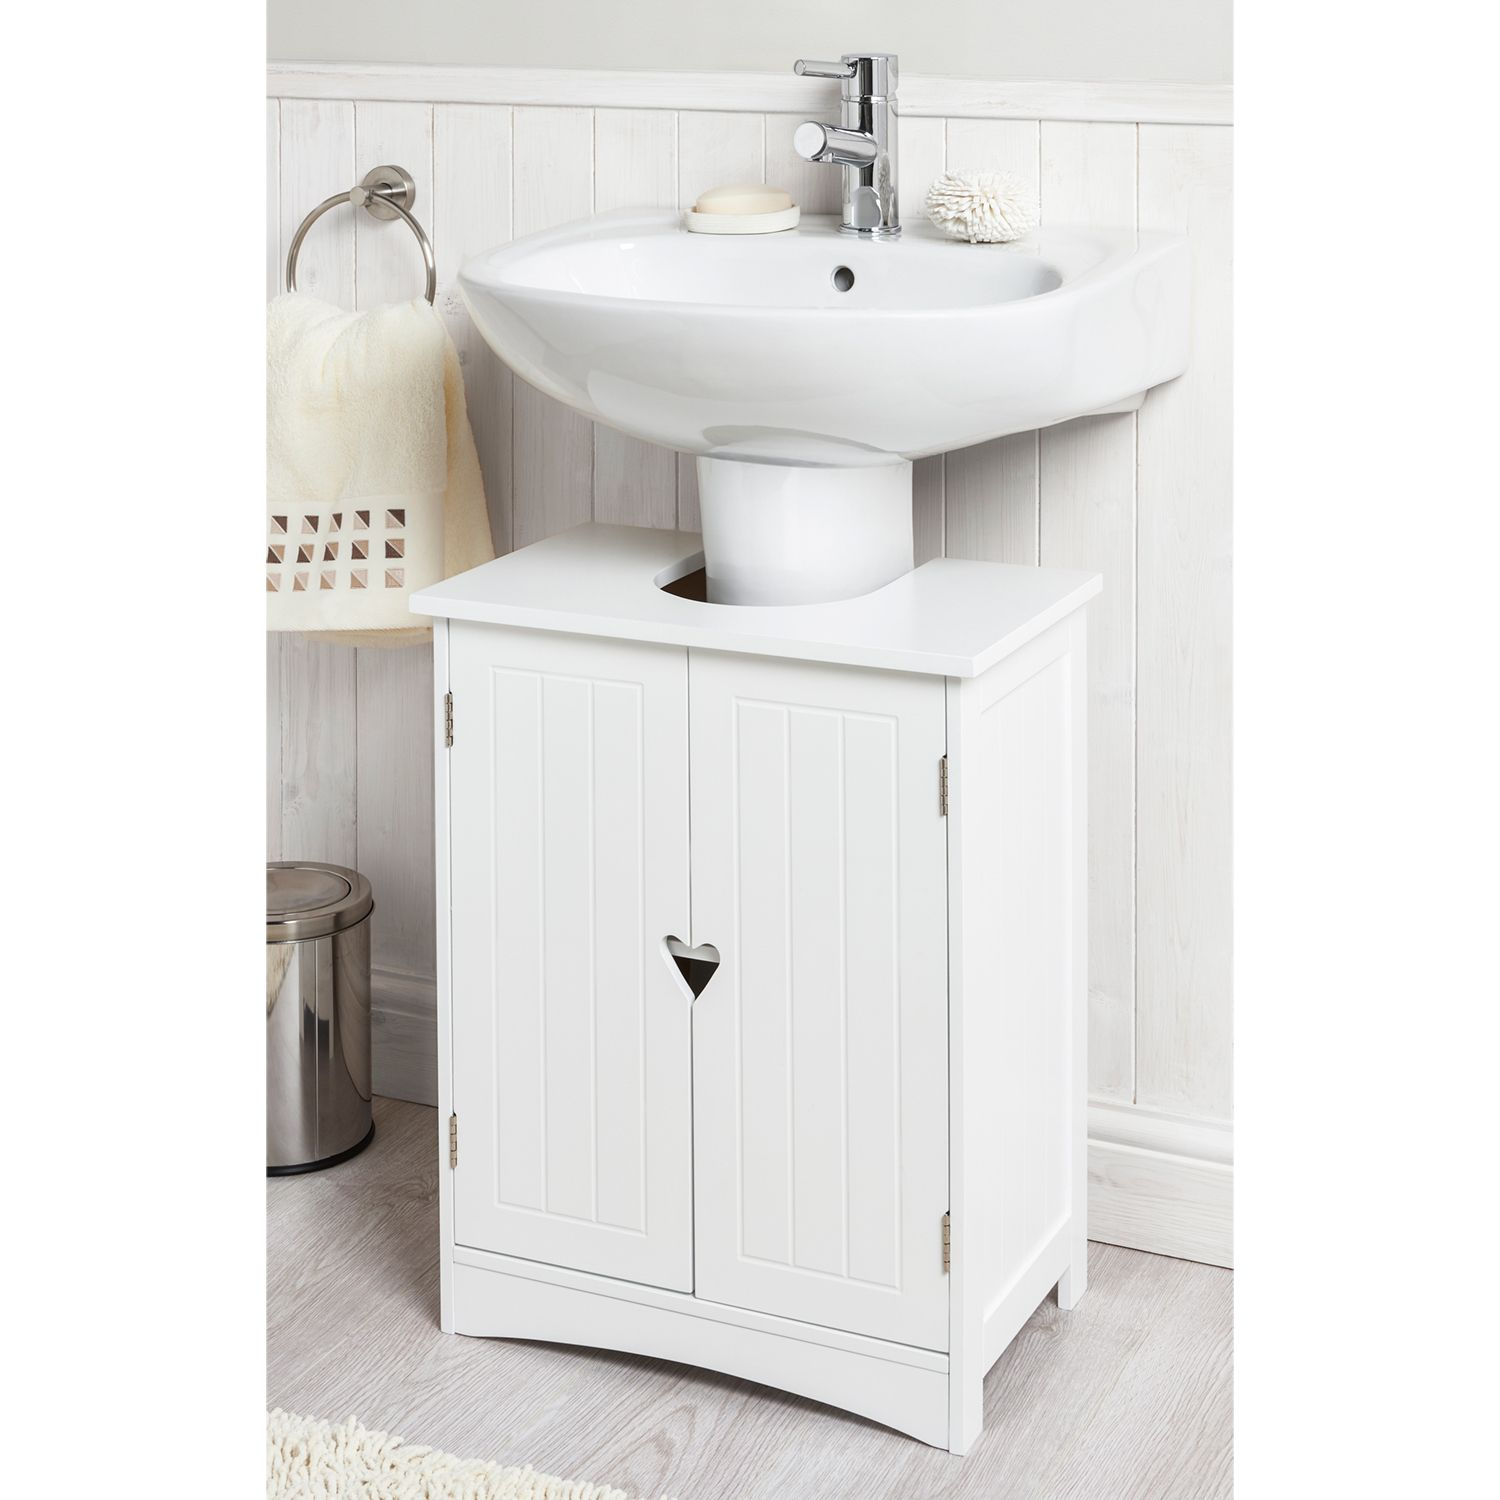 Oxford Sink Unit Sink Units Bathroom Sink Storage Bathroom Essentials